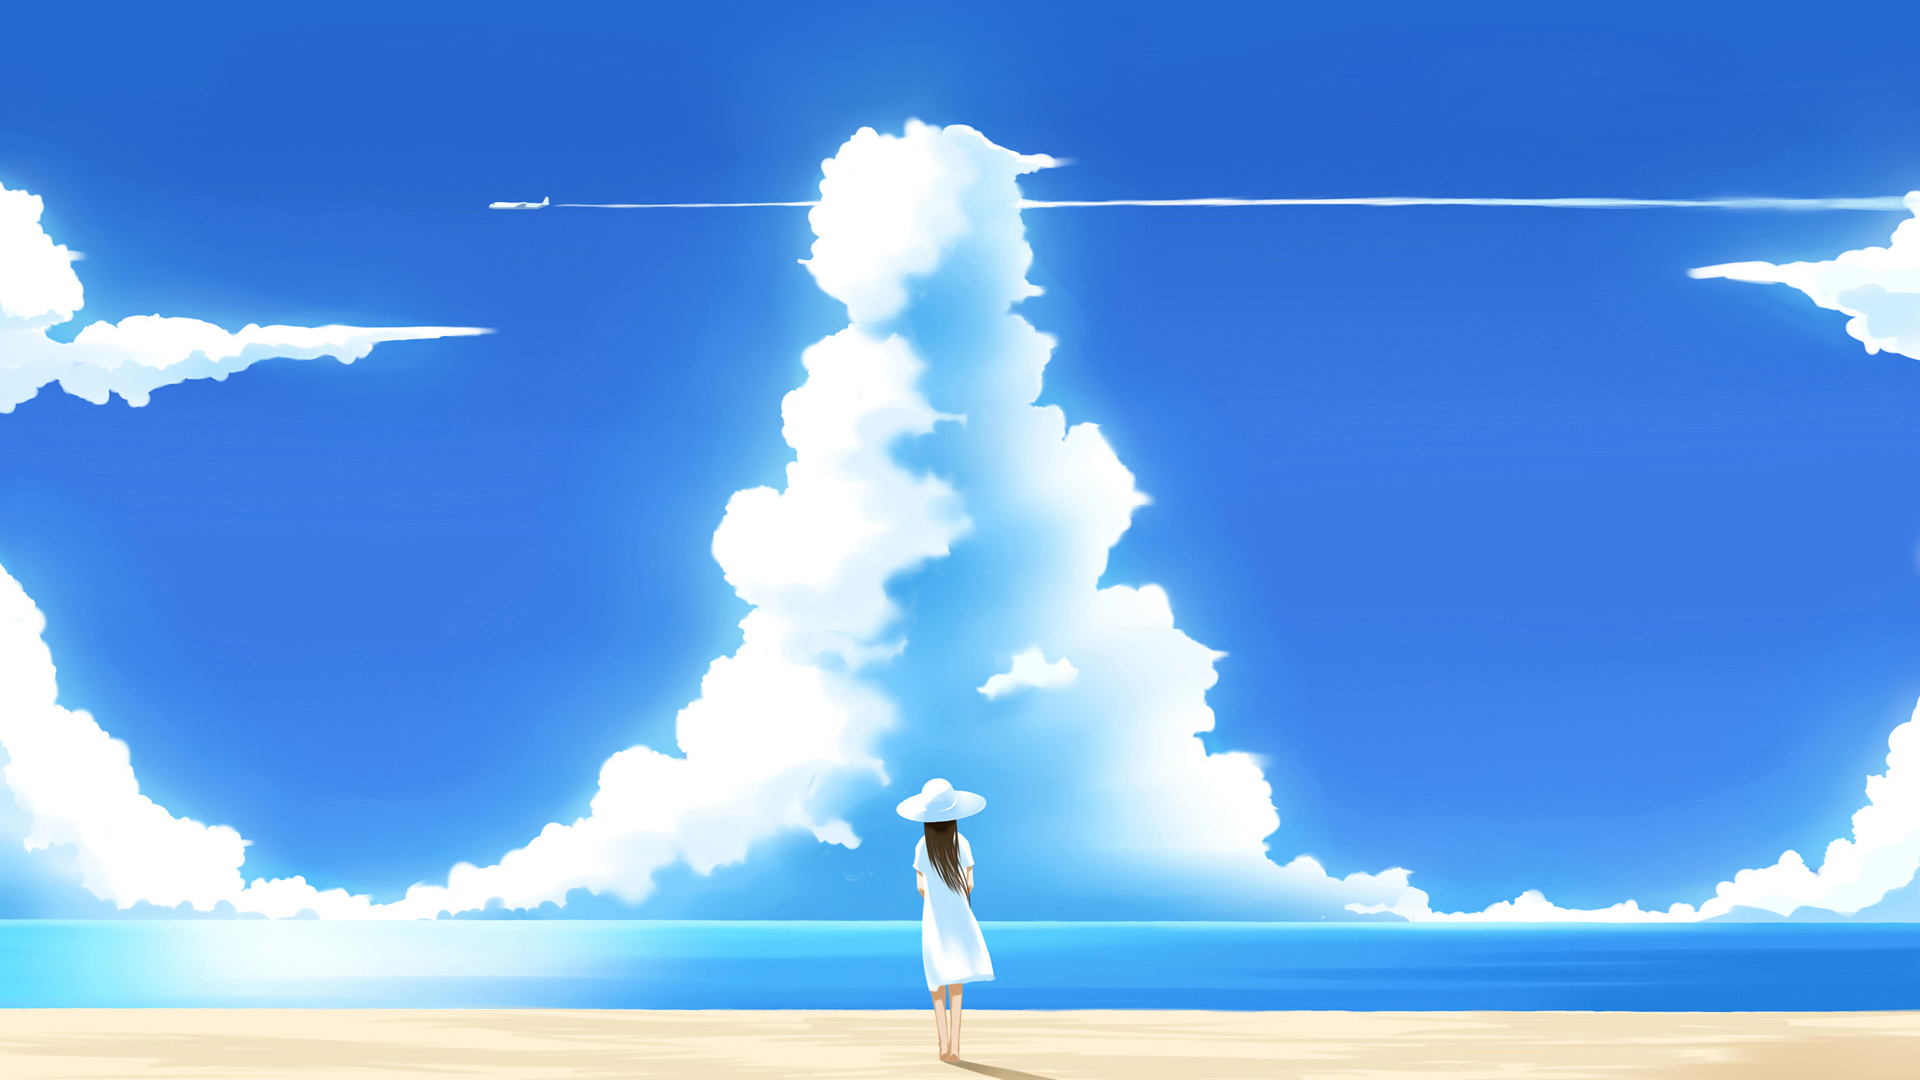 clouds summer lonely skyscapes HD Wallpaper